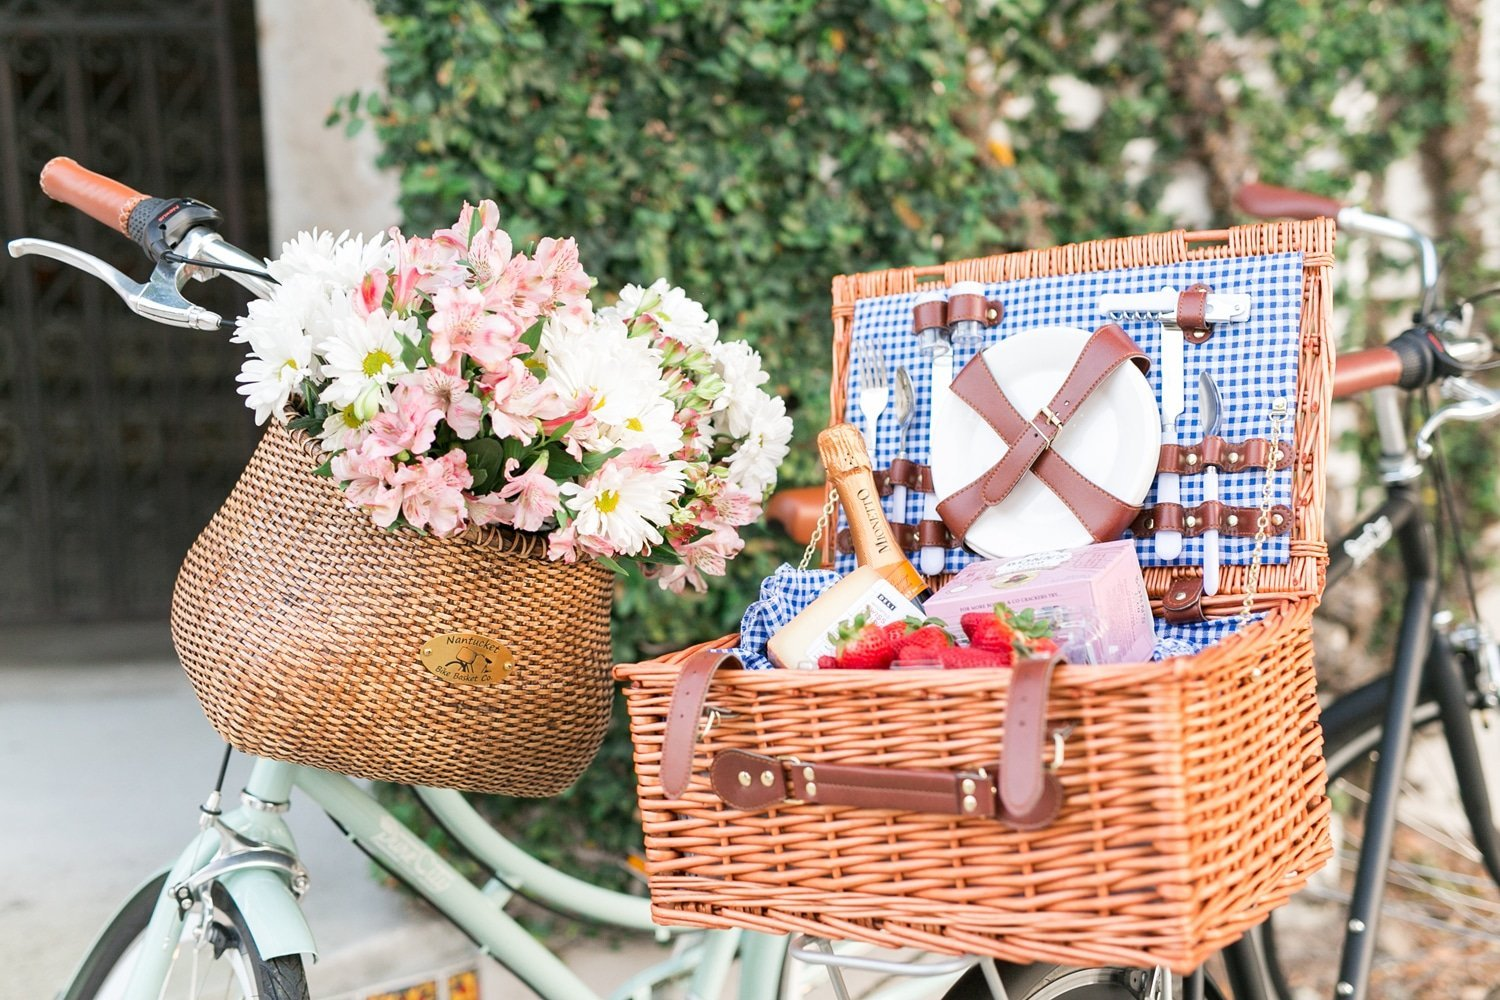 The perfect date night picnic complete with a bike ride! | www.ashleybrookedesigns.com